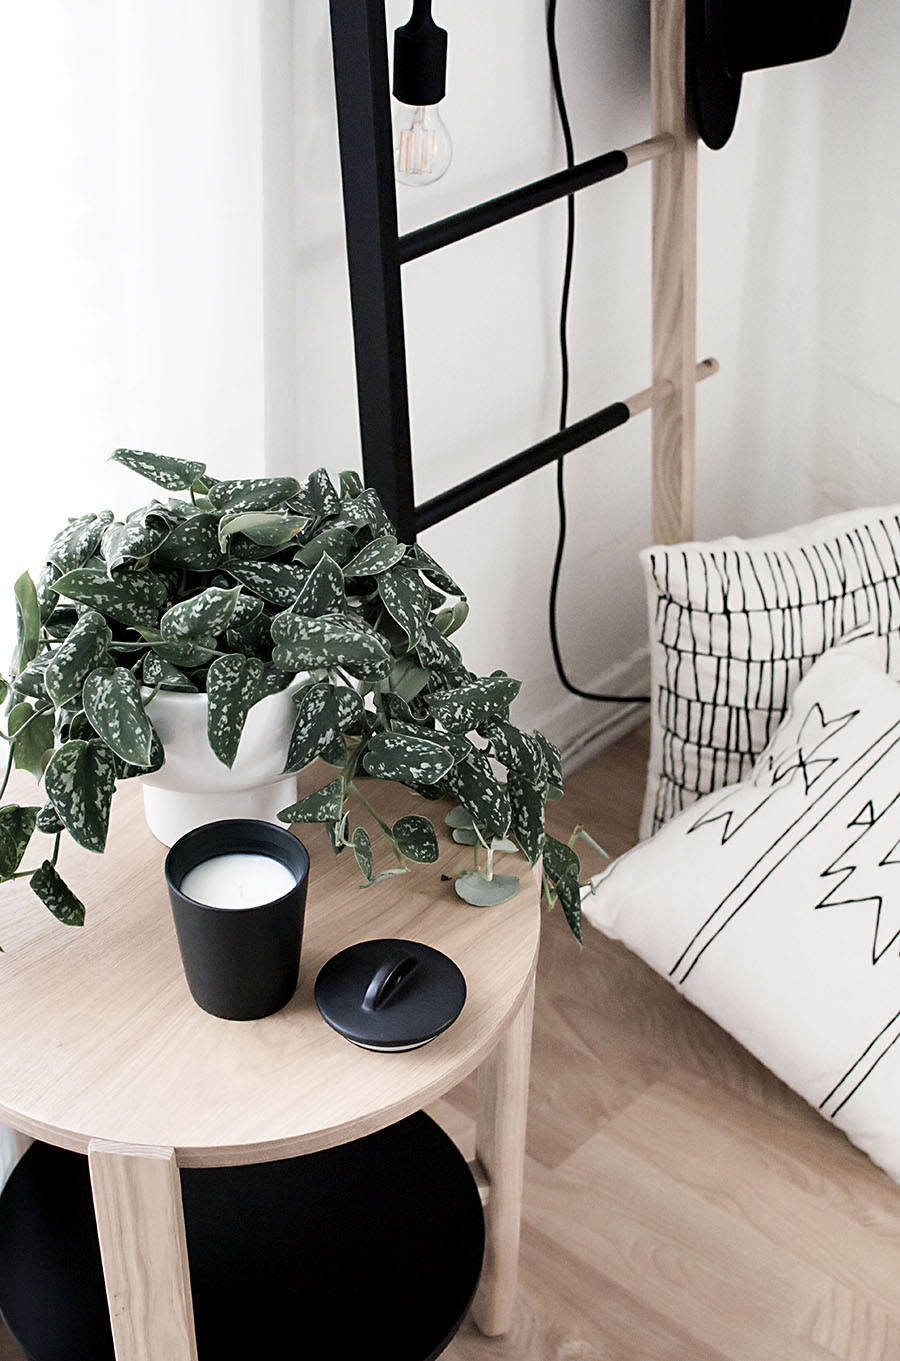 I Ve Become Pretty Familiar With Brands I Adore And Go To For Home Decor Options And One Of Them Is Umbra The Hub Side Table Is Everything I Love About